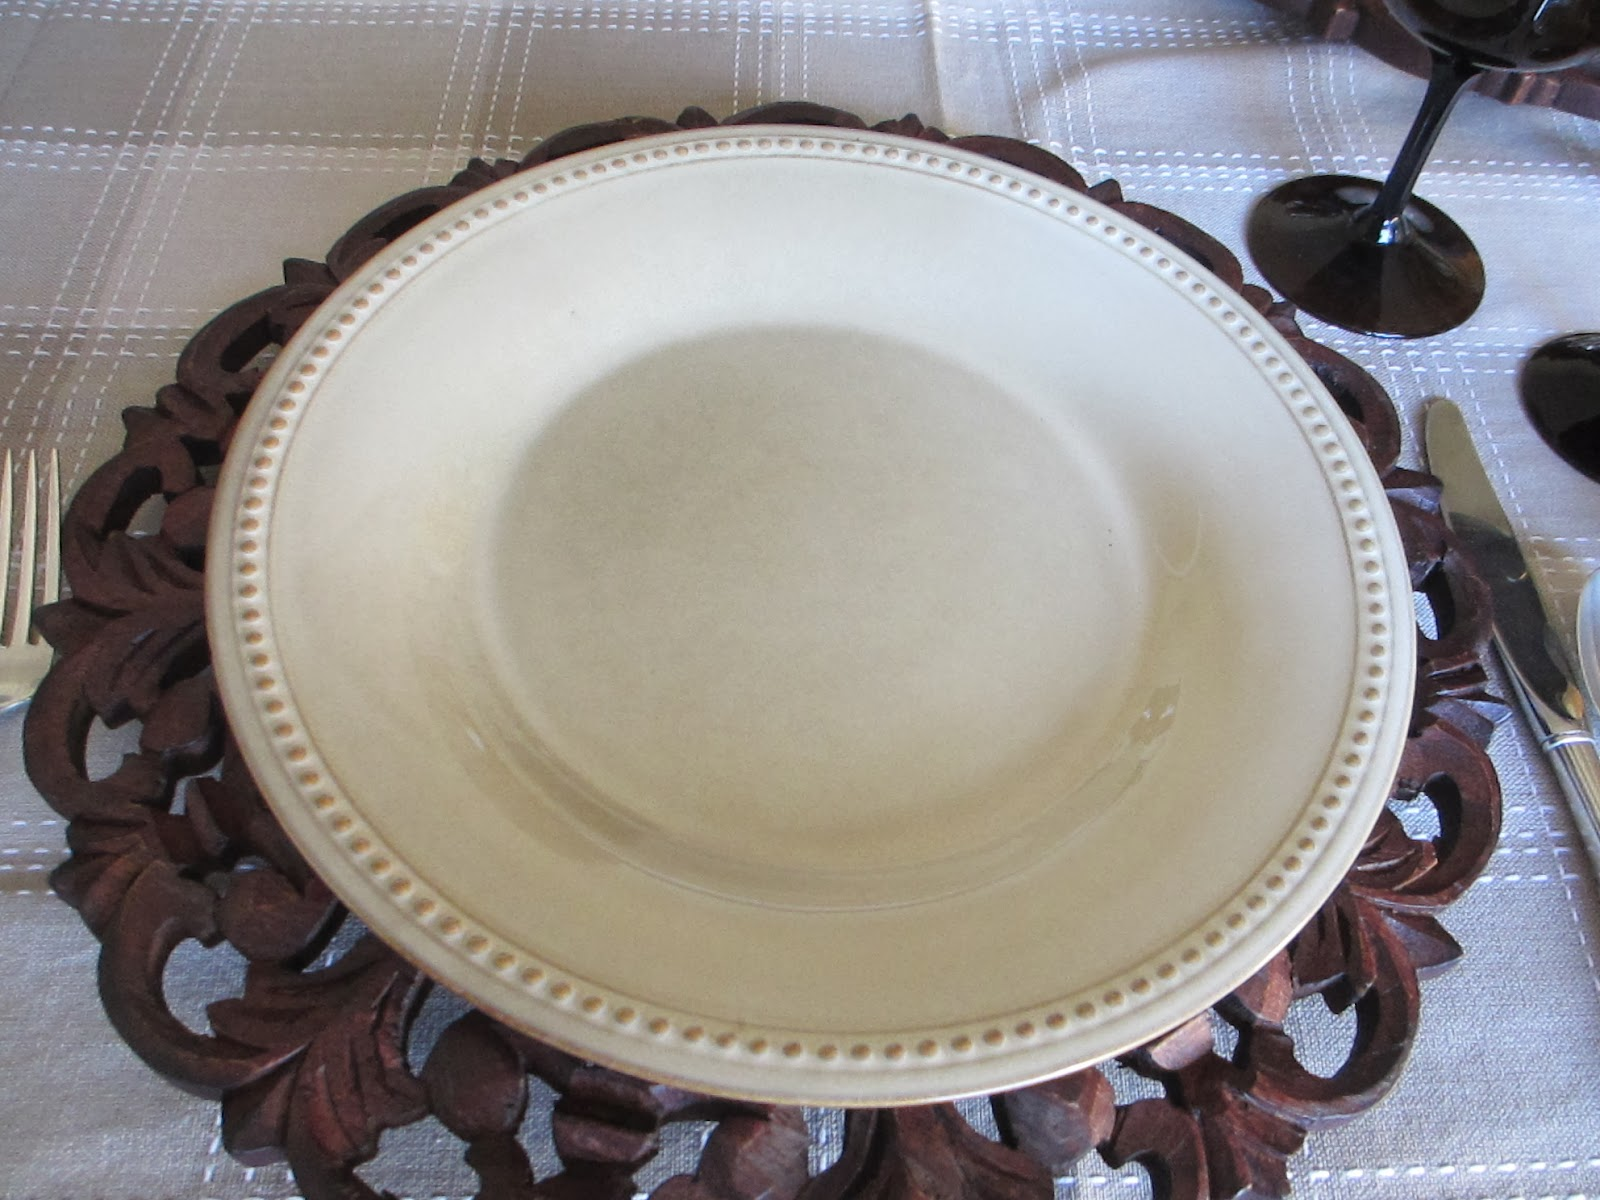 The dinner plate is  Sesame Spice Route  - our Pier 1 carries this pattern in four different colors & The Welcomed Guest: January 2014